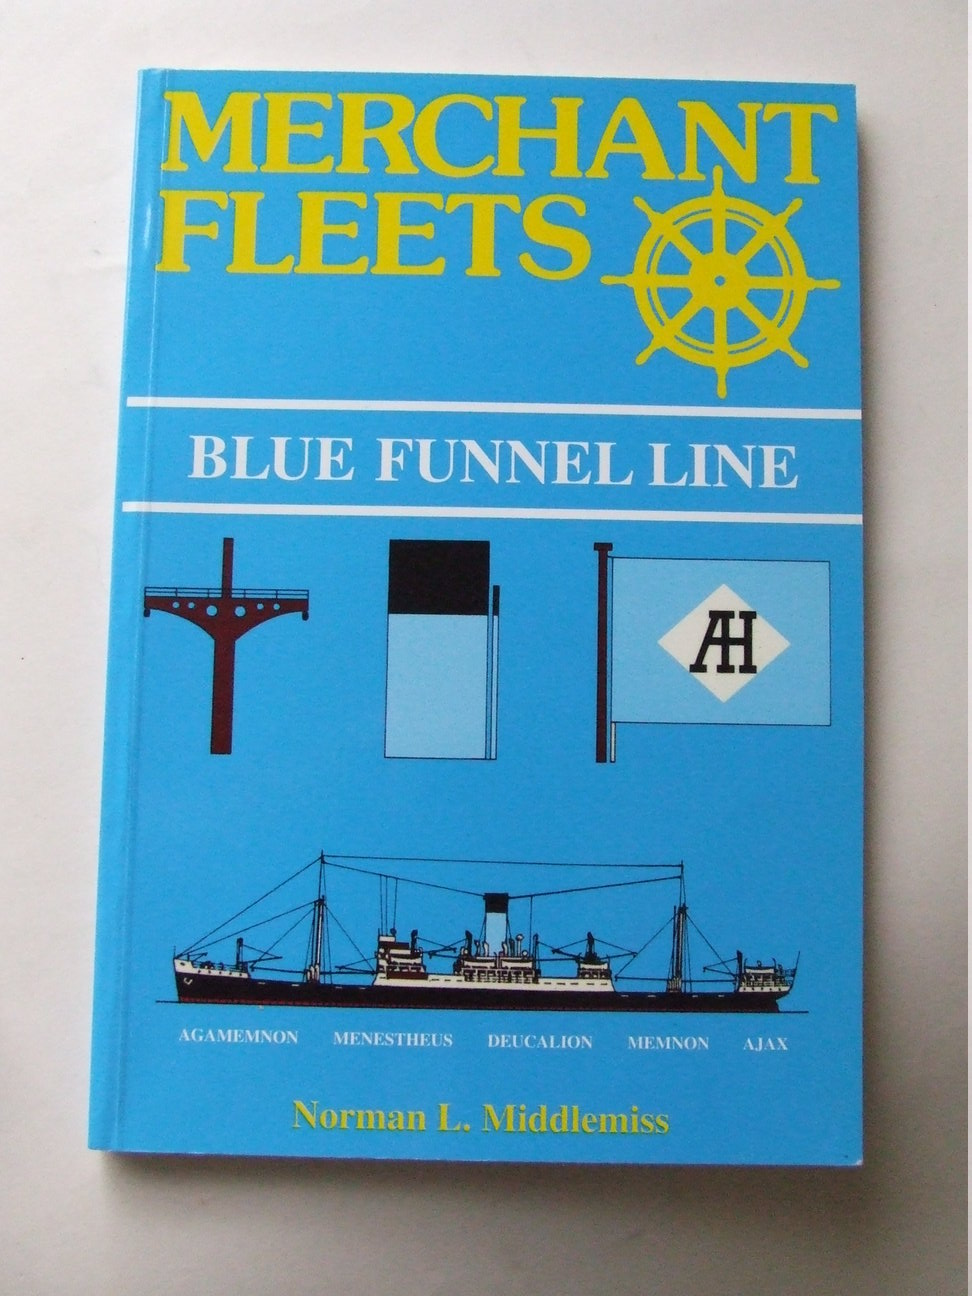 Merchant Fleets 42 [Blue Funnel Line]